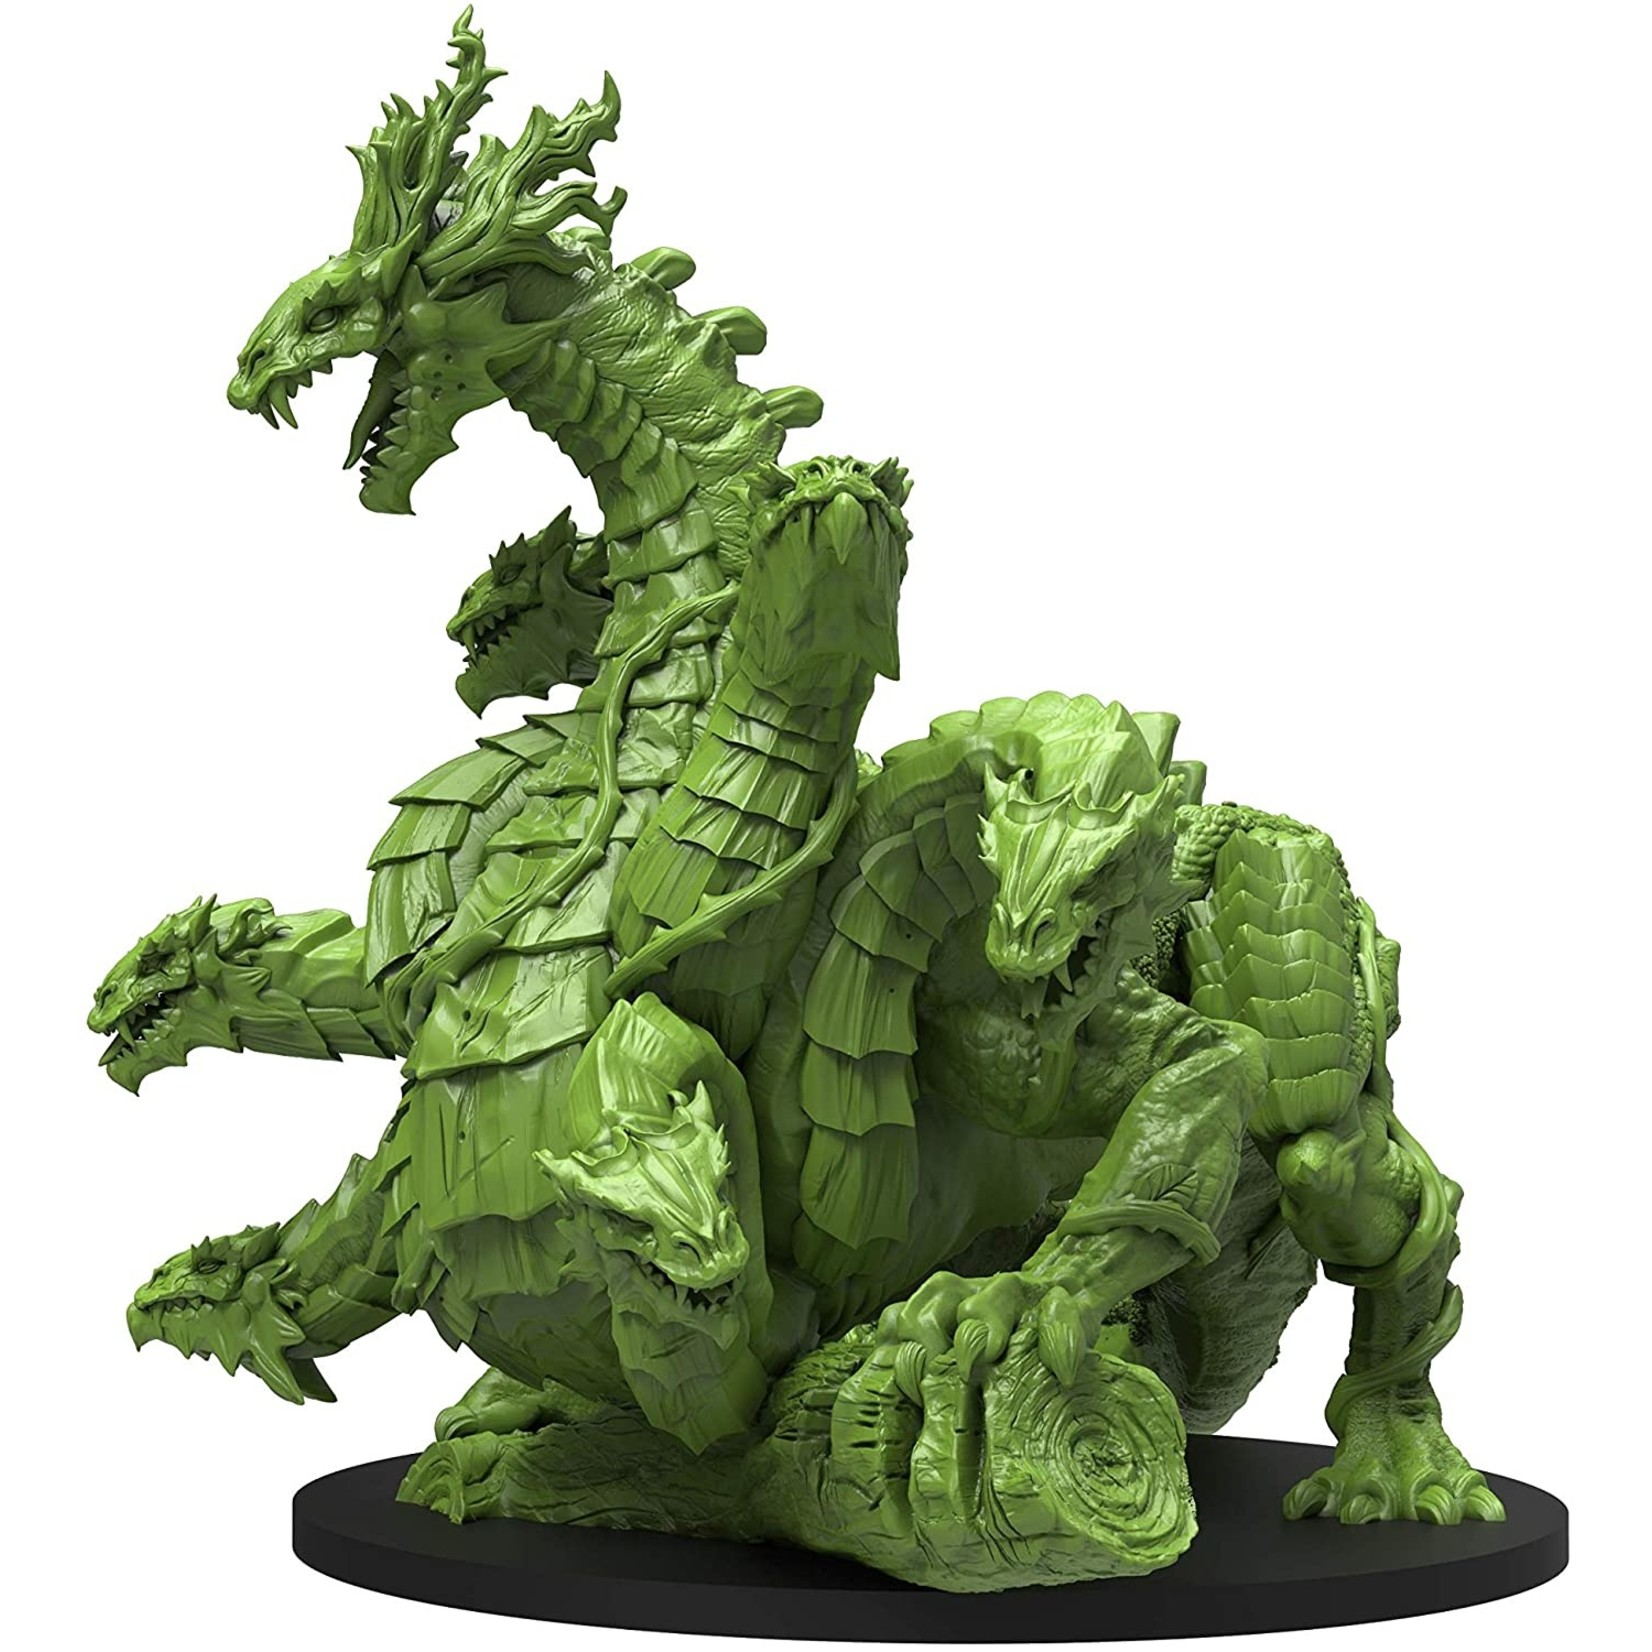 Steamforged Epic Encounters: Swamp of the Hydra